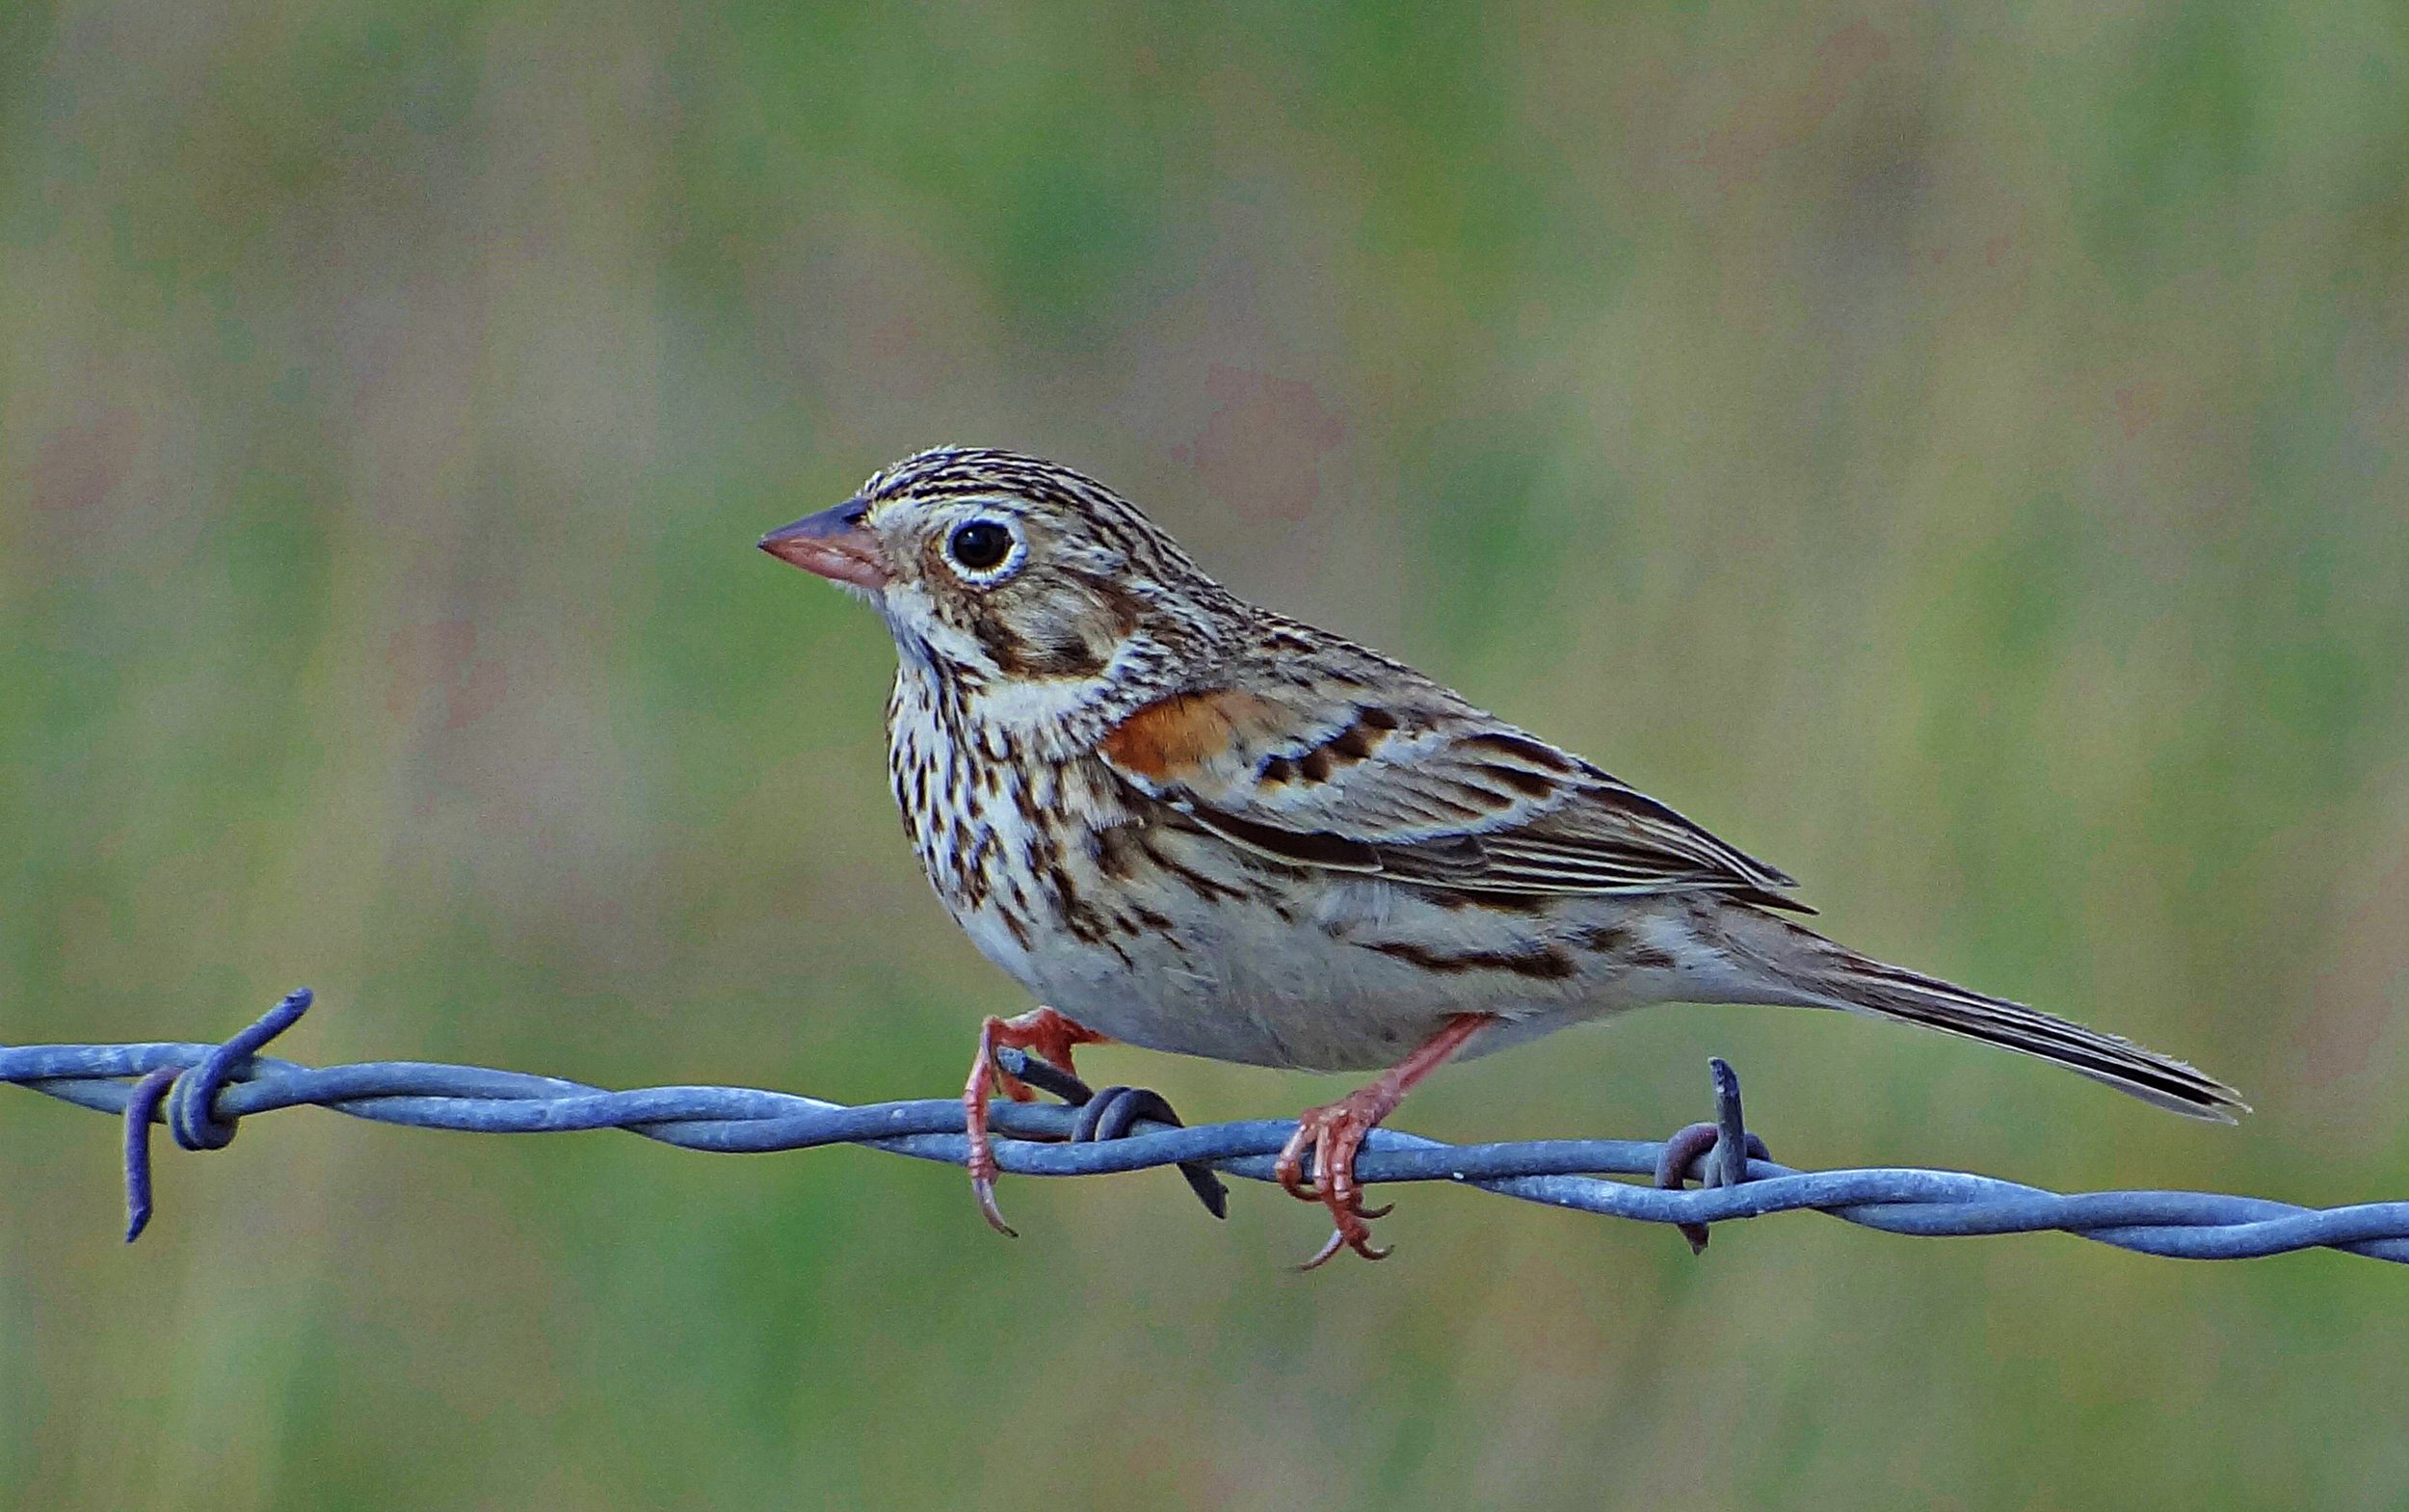 """- Vesper Sparrow (Pooecetes gramineus)Vesper Sparrows live in open areas such as meadows, prairies, and grasslands. Their diet consists of seeds, insects, and arachnids. They have an average wingspan of 9.4 in. and weigh 0.7-1 oz. Vesper Sparrows sing """"come-come-where-where-all-together-down-the-hill."""" They are protected on the US Migratory Bird list.Photo Credits: Jay Phagan"""